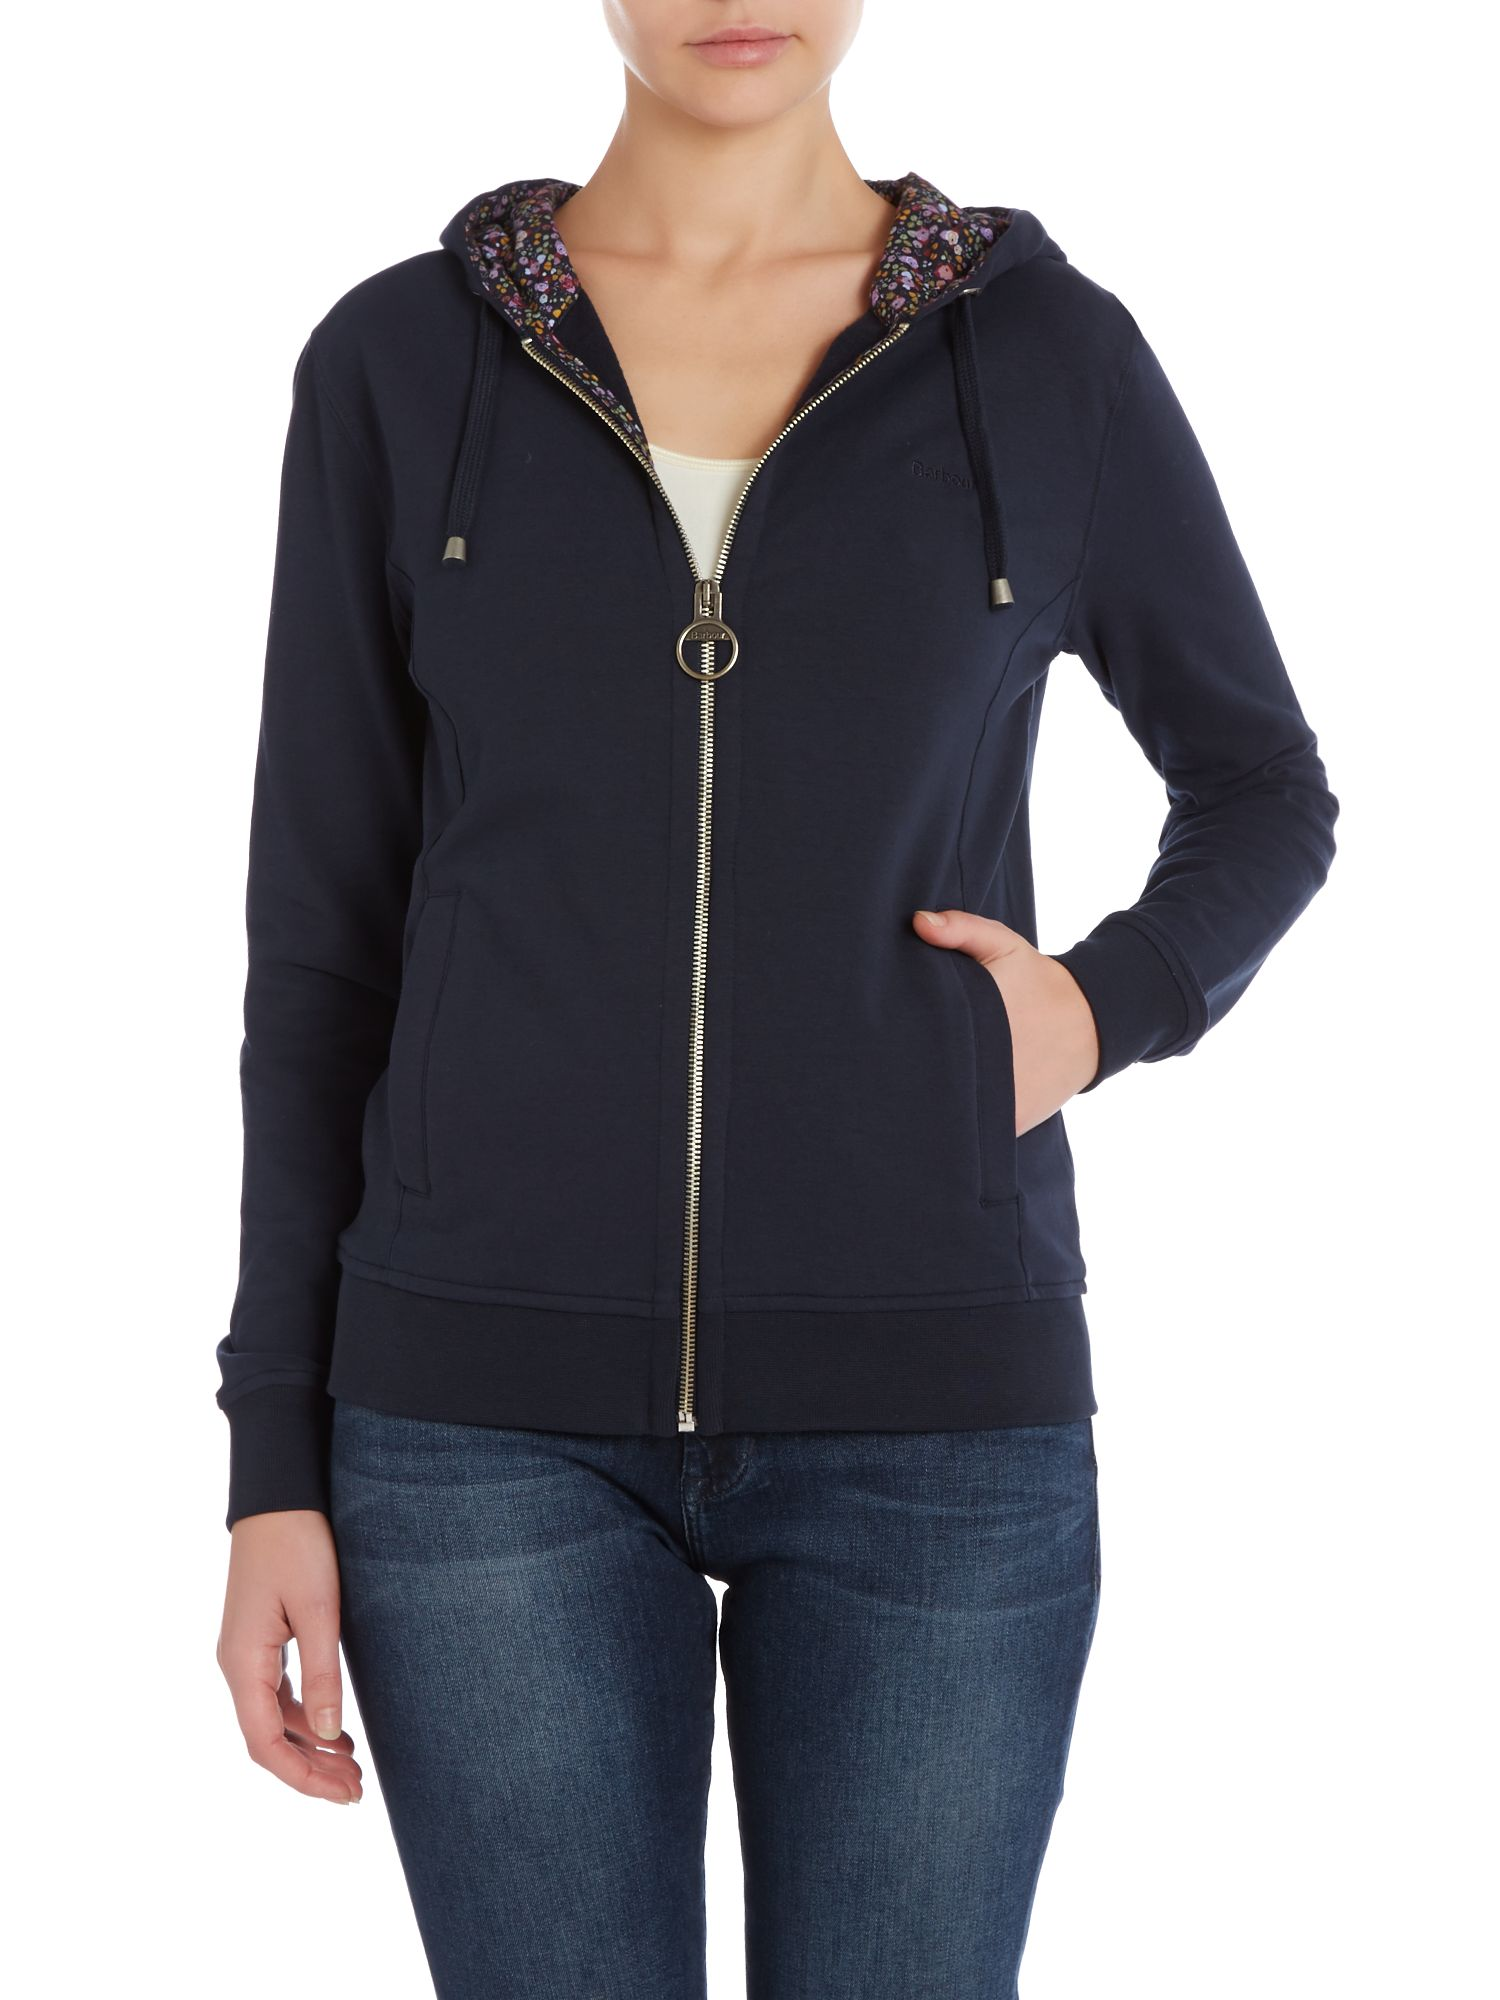 Netherton zip up jumper